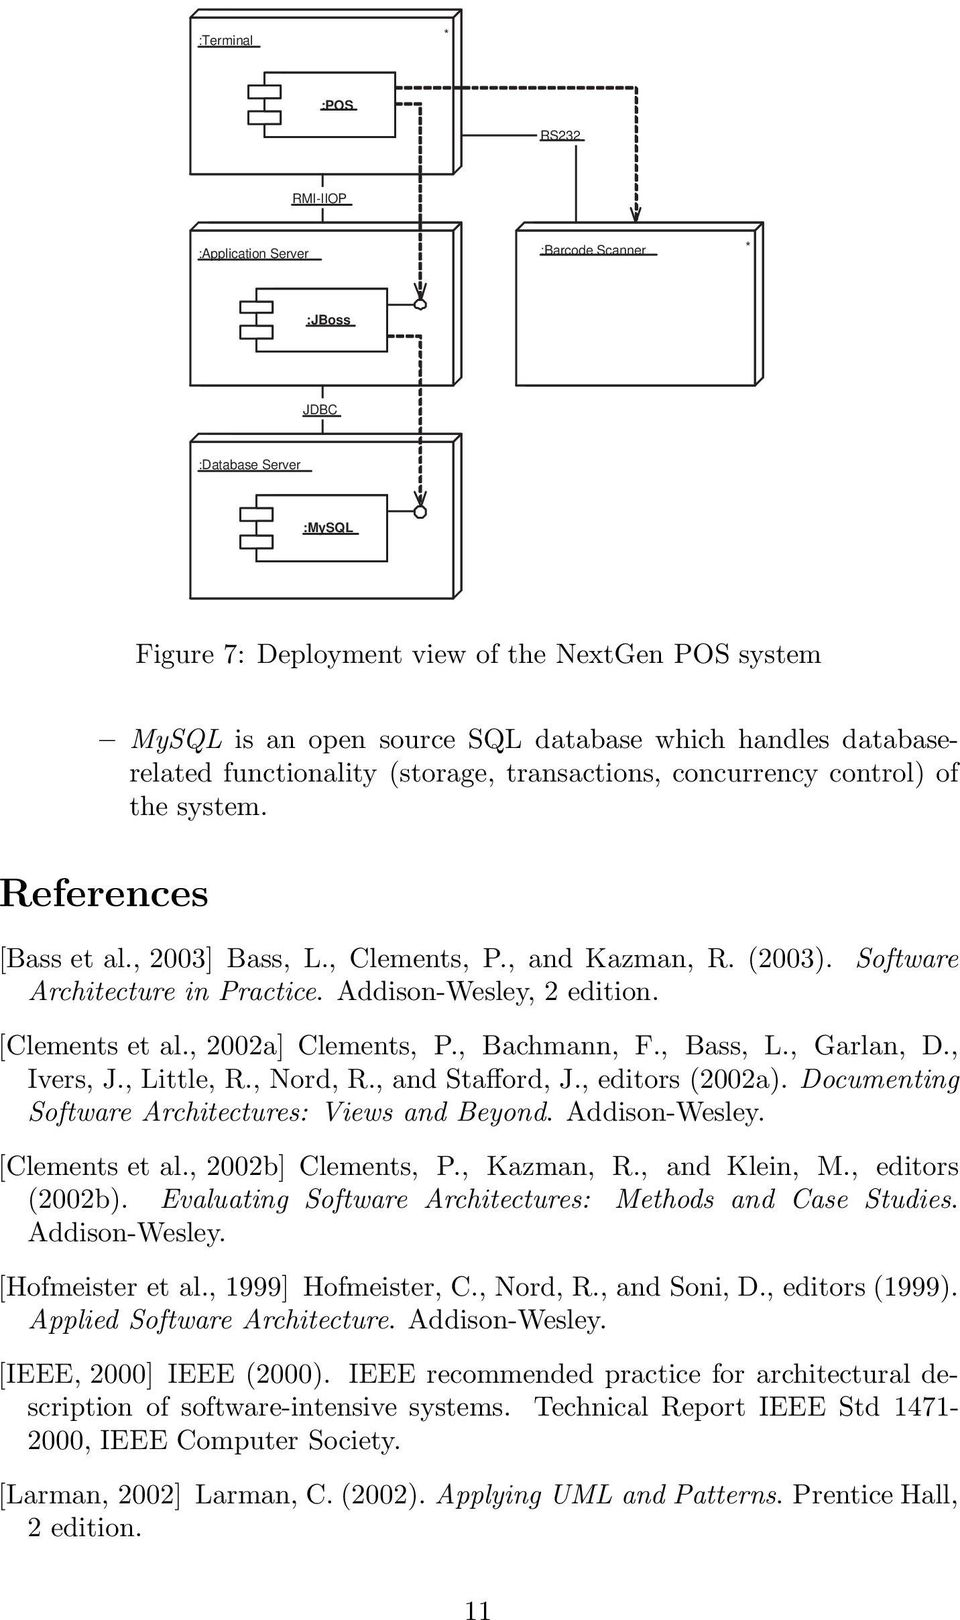 Software Architecture in Practice. Addison-Wesley, 2 edition. [Clements et al., 2002a] Clements, P., Bachmann, F., Bass, L., Garlan, D., Ivers, J., Little, R., Nord, R., and Stafford, J.